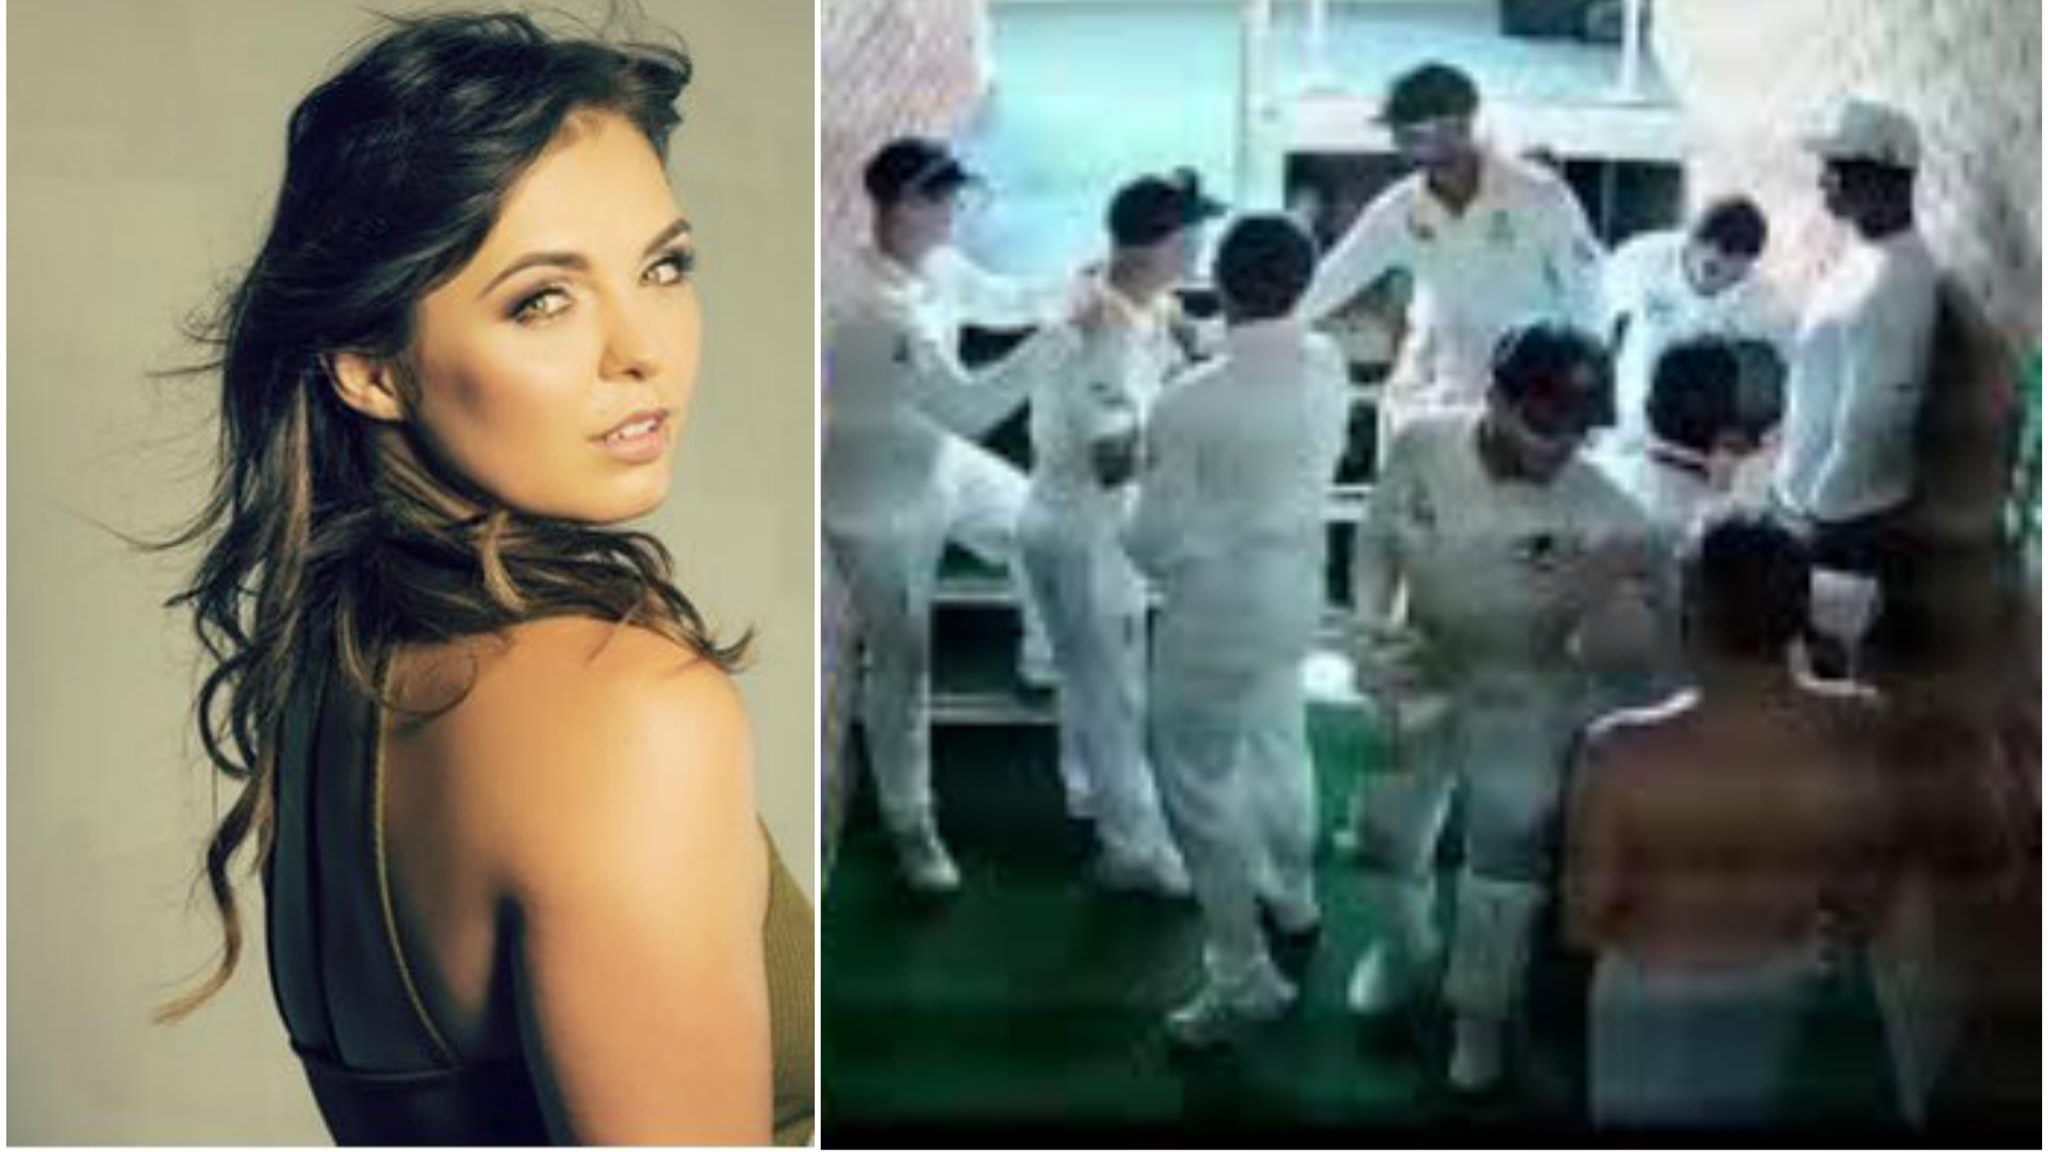 SA v AUS 2018: Faf Du Plessis' wife reacts on seeing her hubby in towel during Warner-De Kock altercation